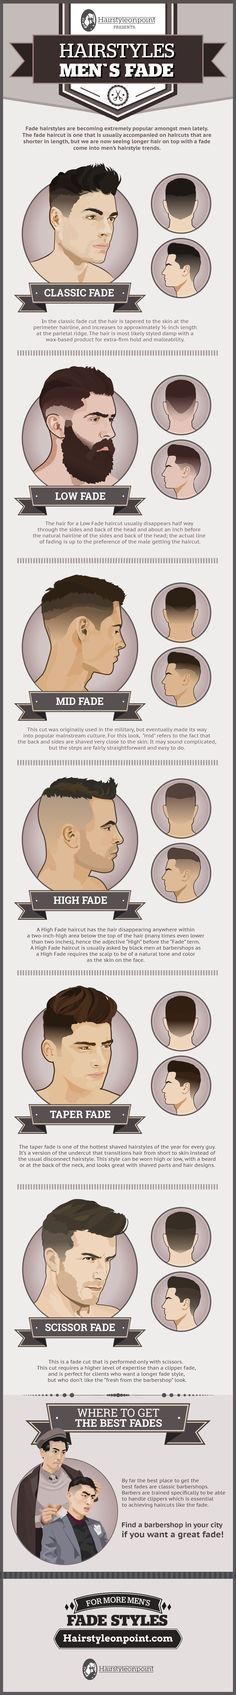 Mens Fade Hairstyles. #Grooming #Hairstyle